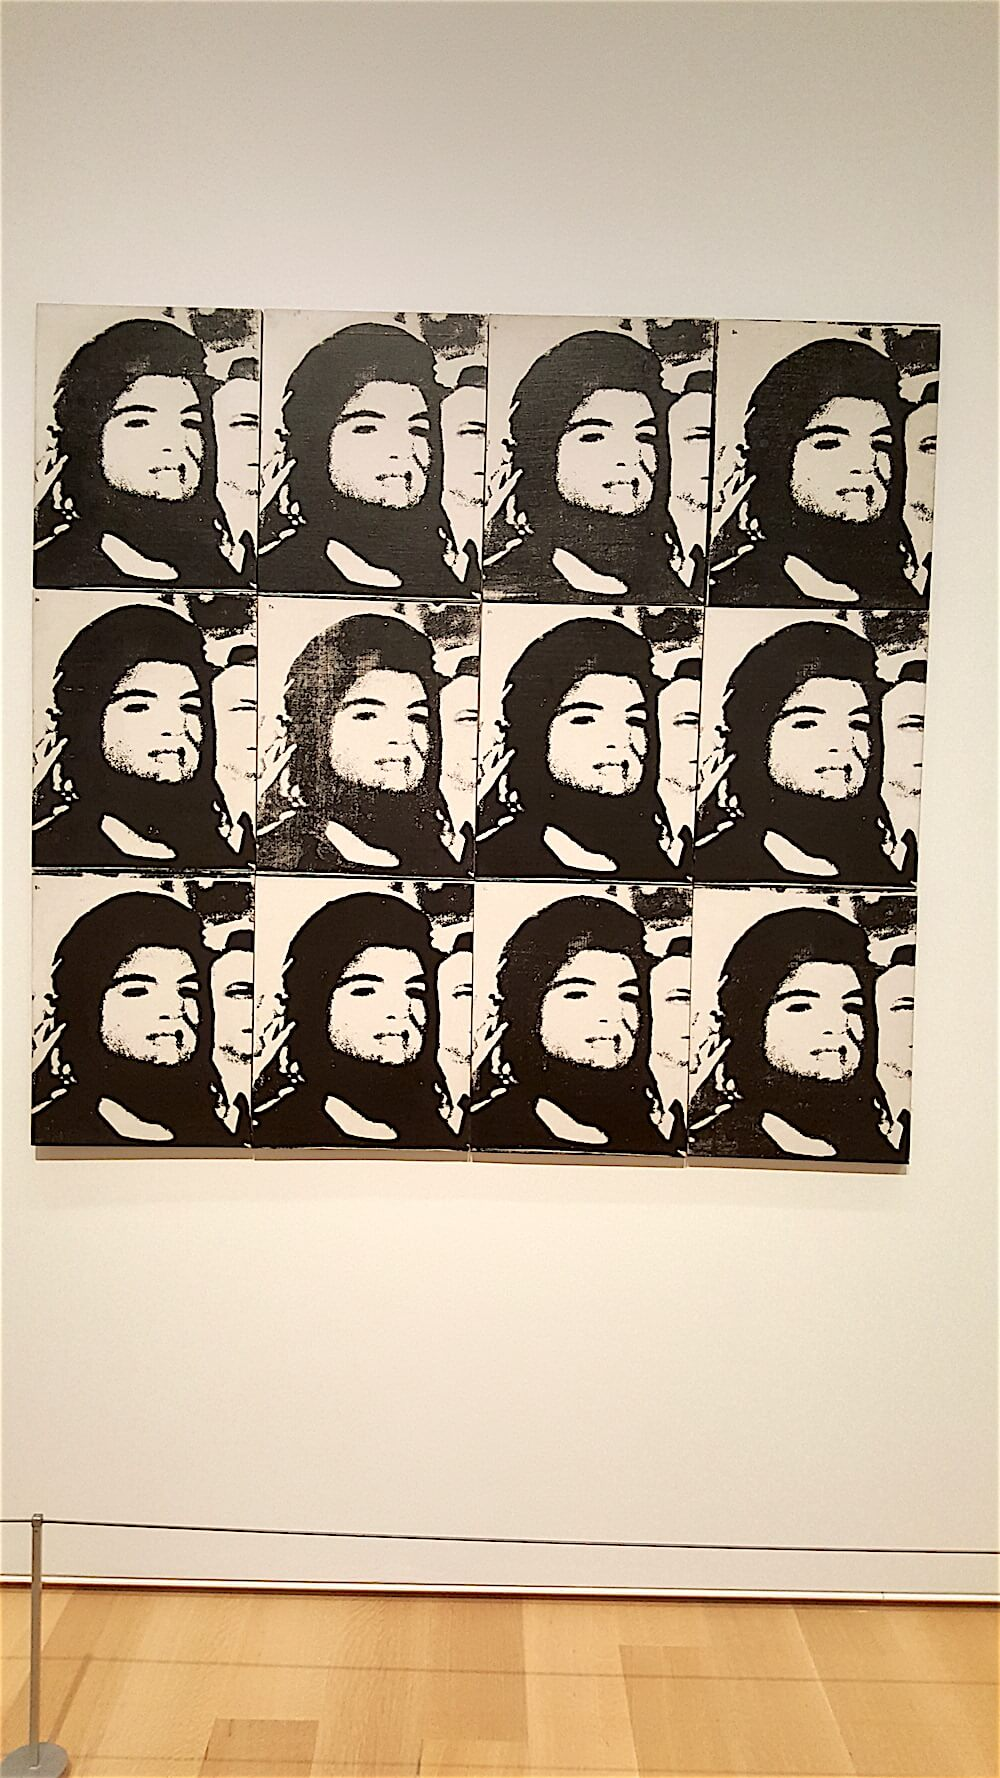 "Here's 12 Jackies from 1964. I love a famous Warhol quote that was on display, ""I'm a deeply superficial person."" Ha."